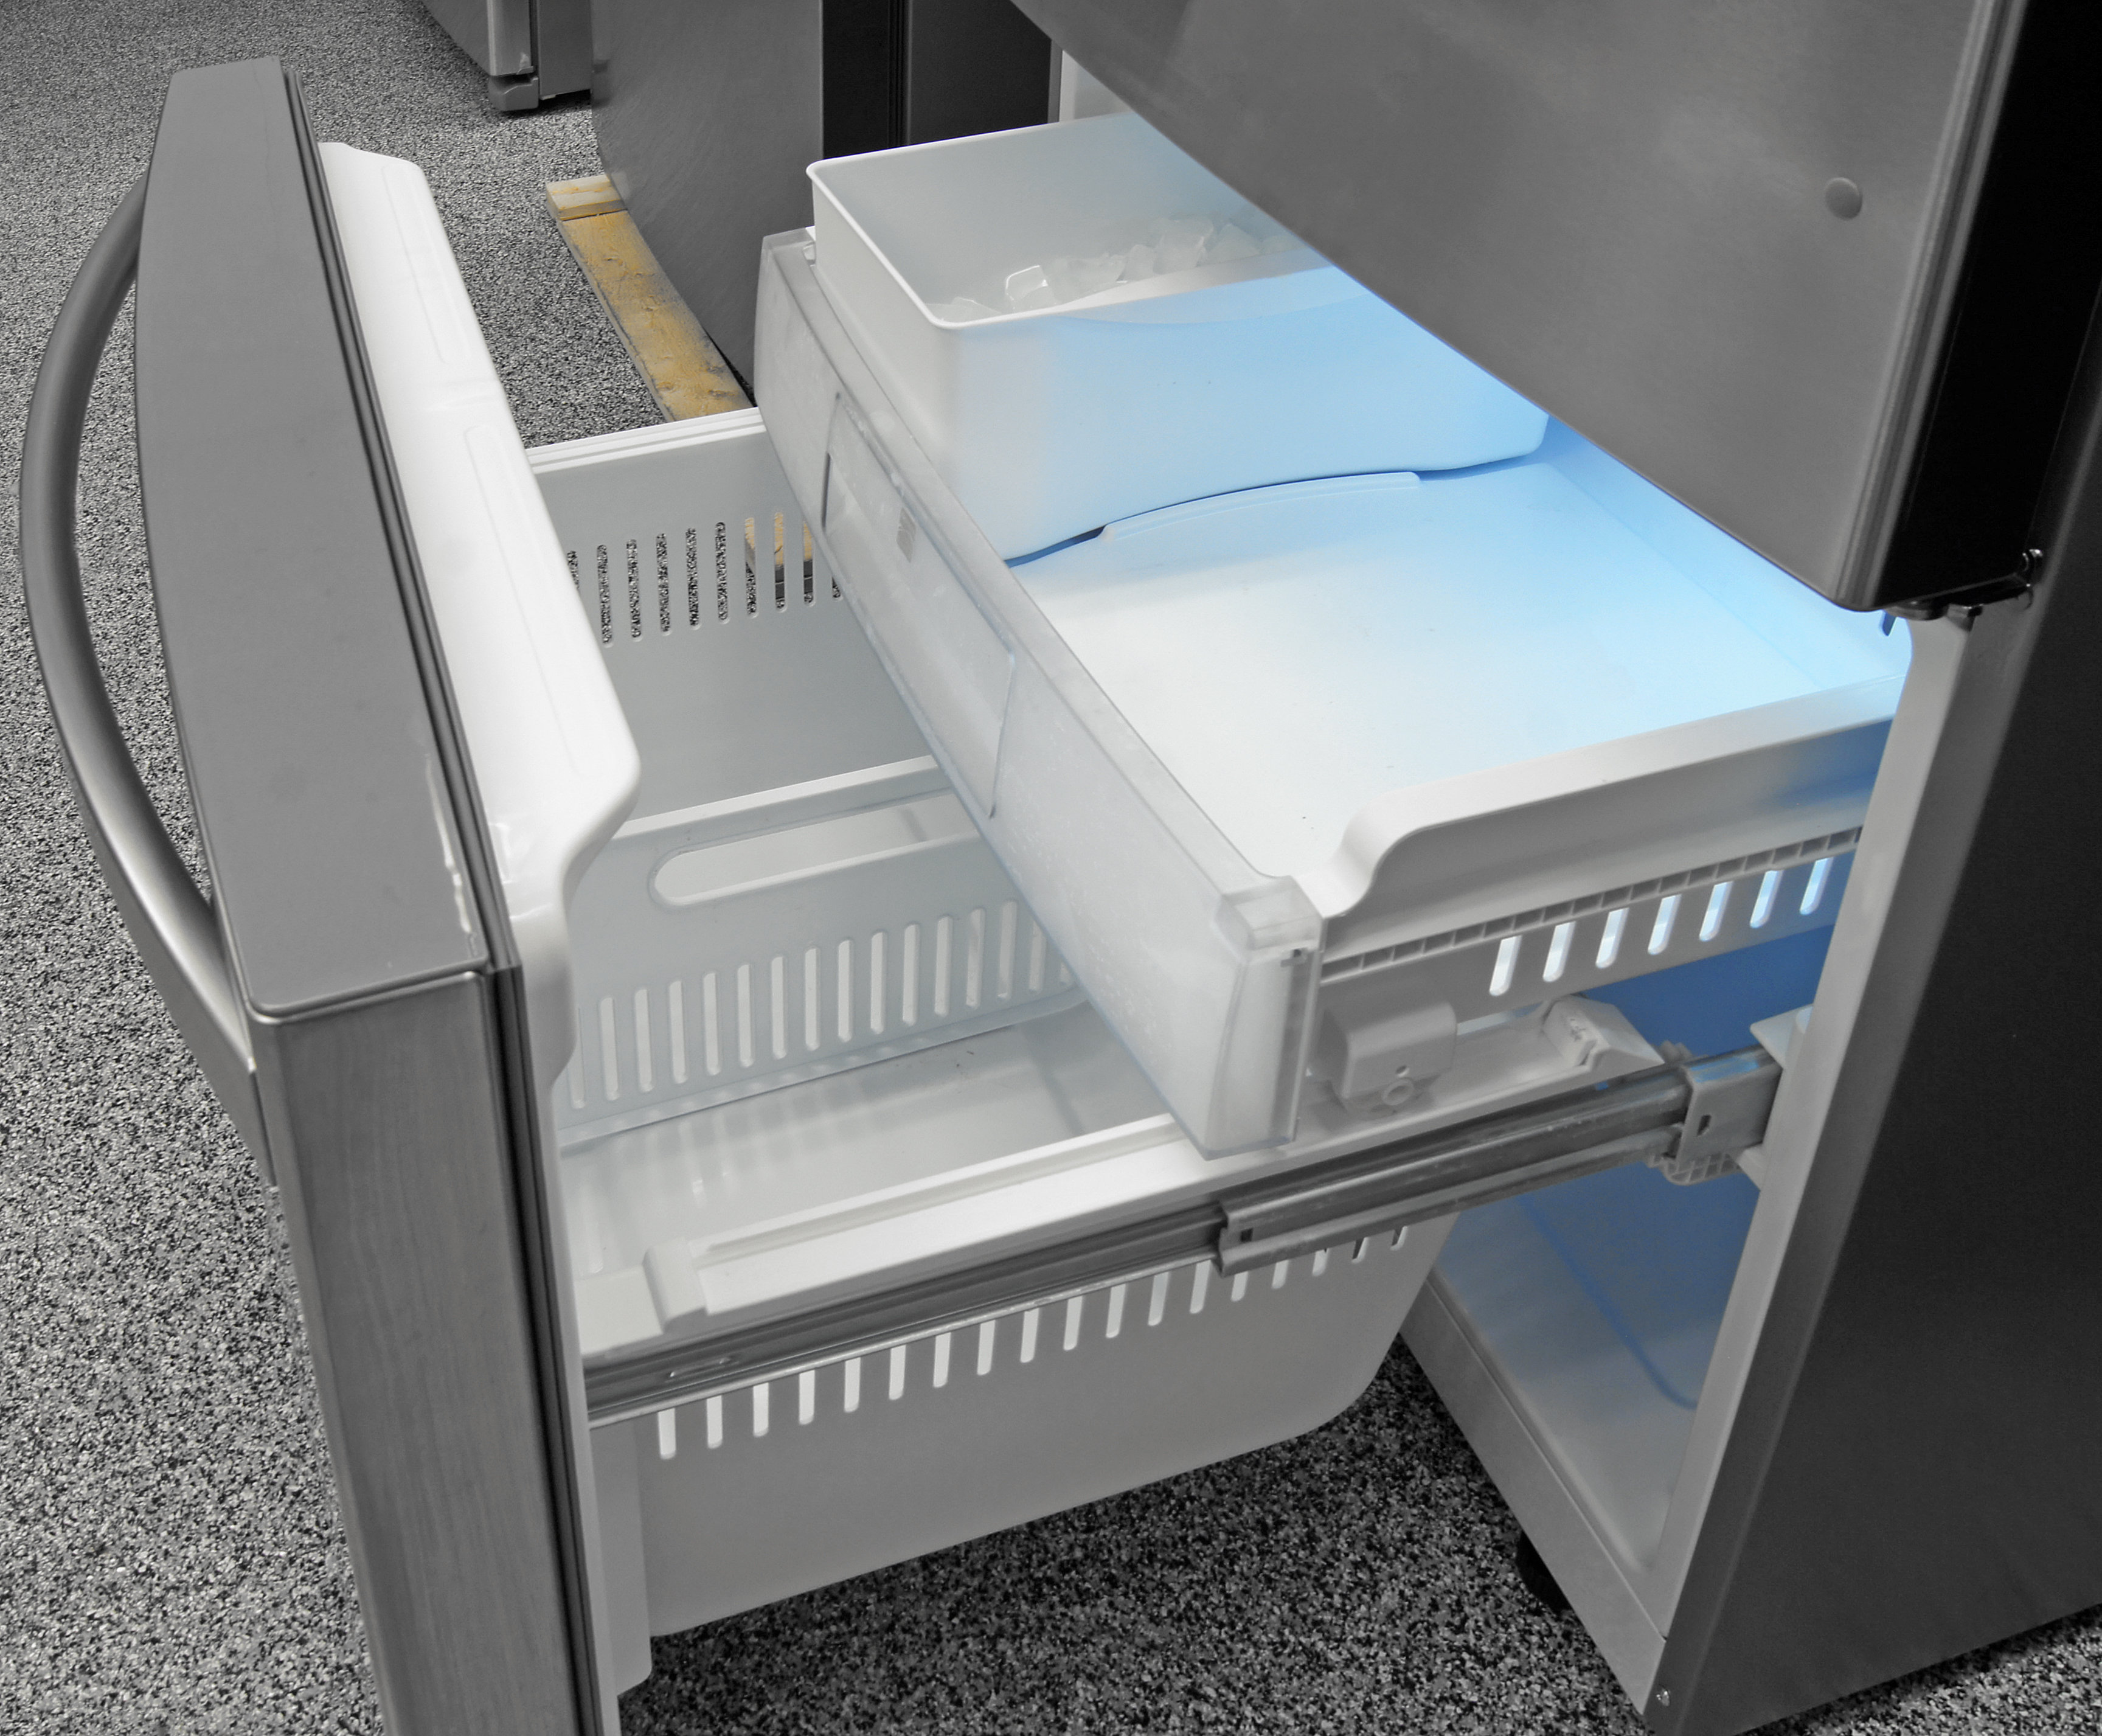 The Kenmore Elite 79043's sliding drawers offer plenty of perfectly chilled freezer storage.